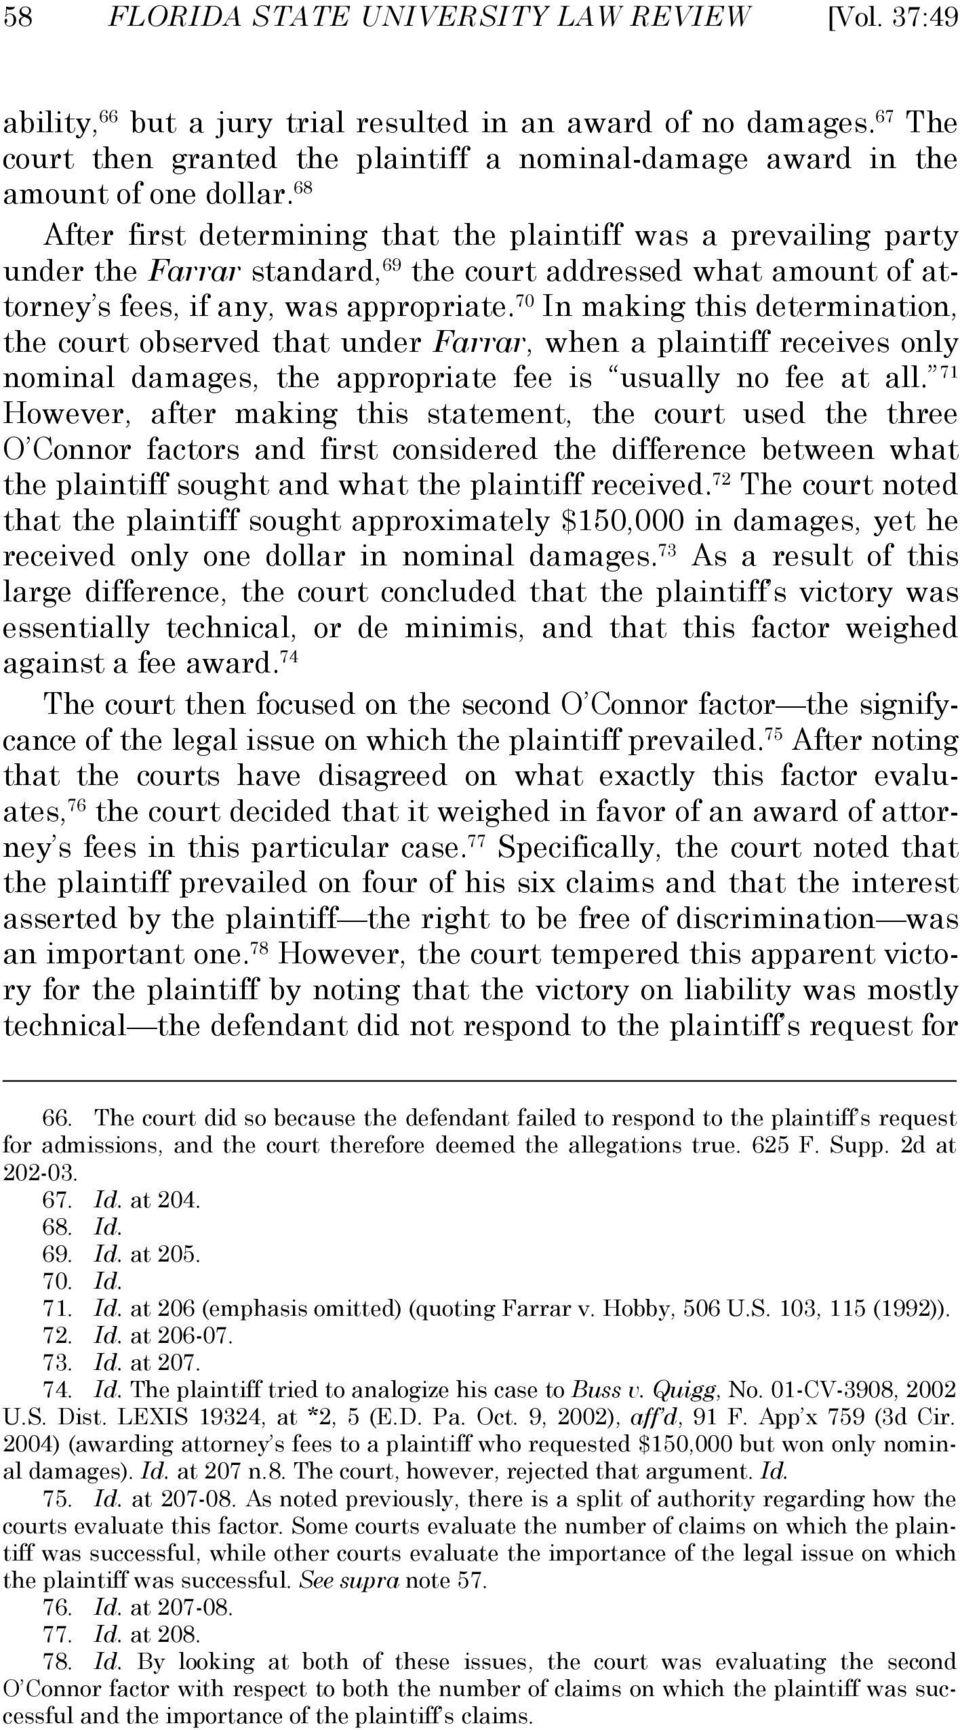 68 After first determining that the plaintiff was a prevailing party under the Farrar standard, 69 the court addressed what amount of attorney s fees, if any, was appropriate.